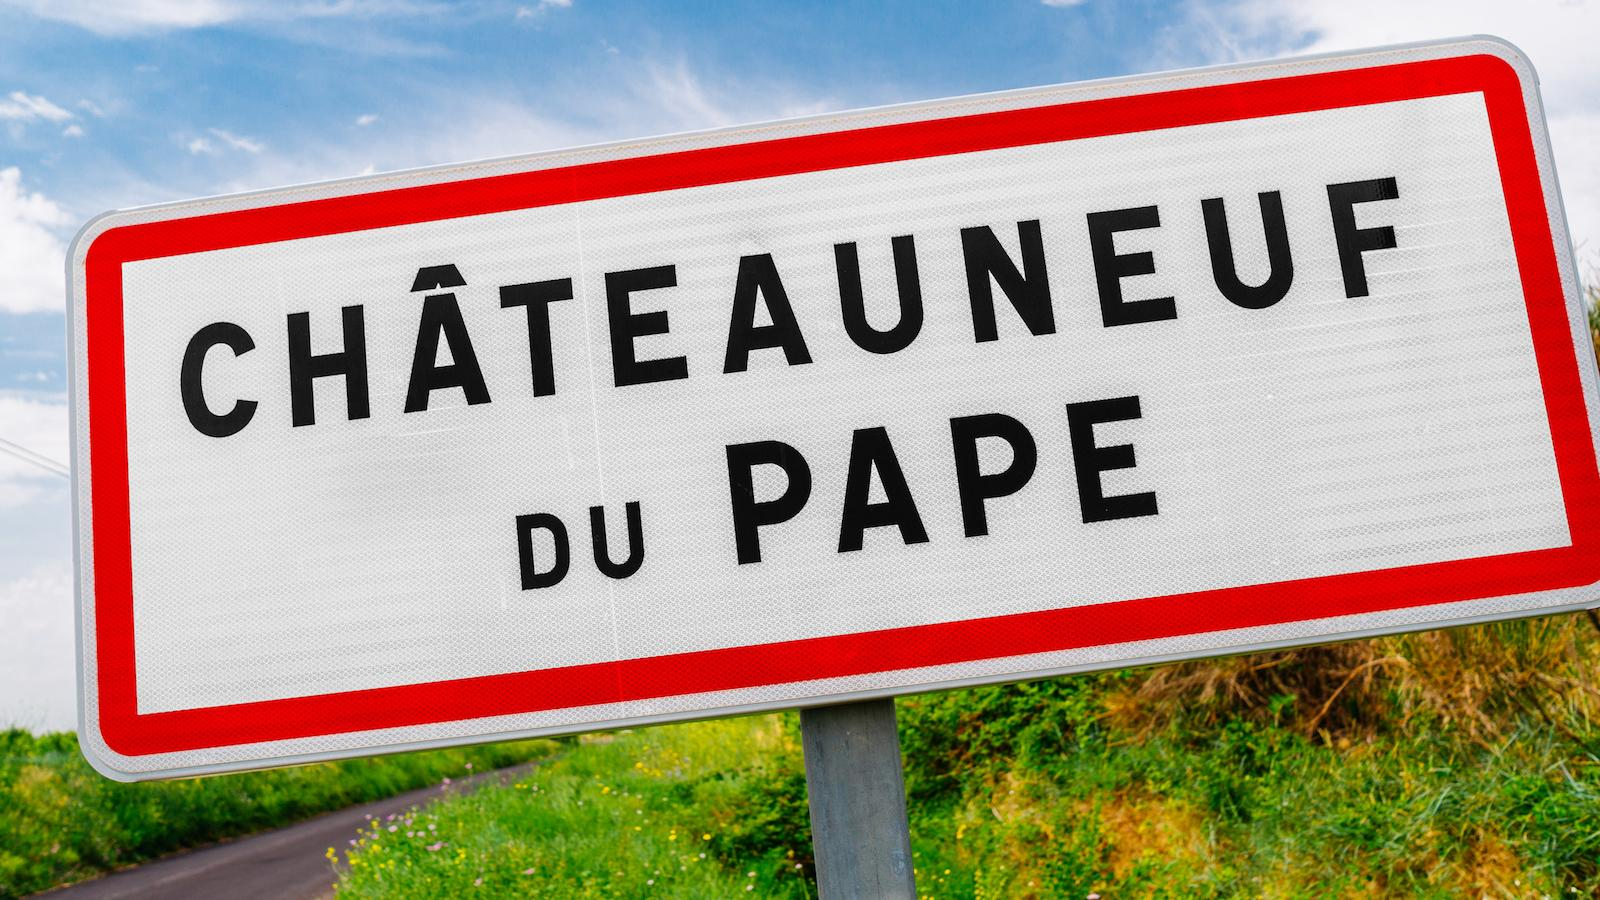 Is Châteauneuf-du-Pape on the road to another benchmark vintage?